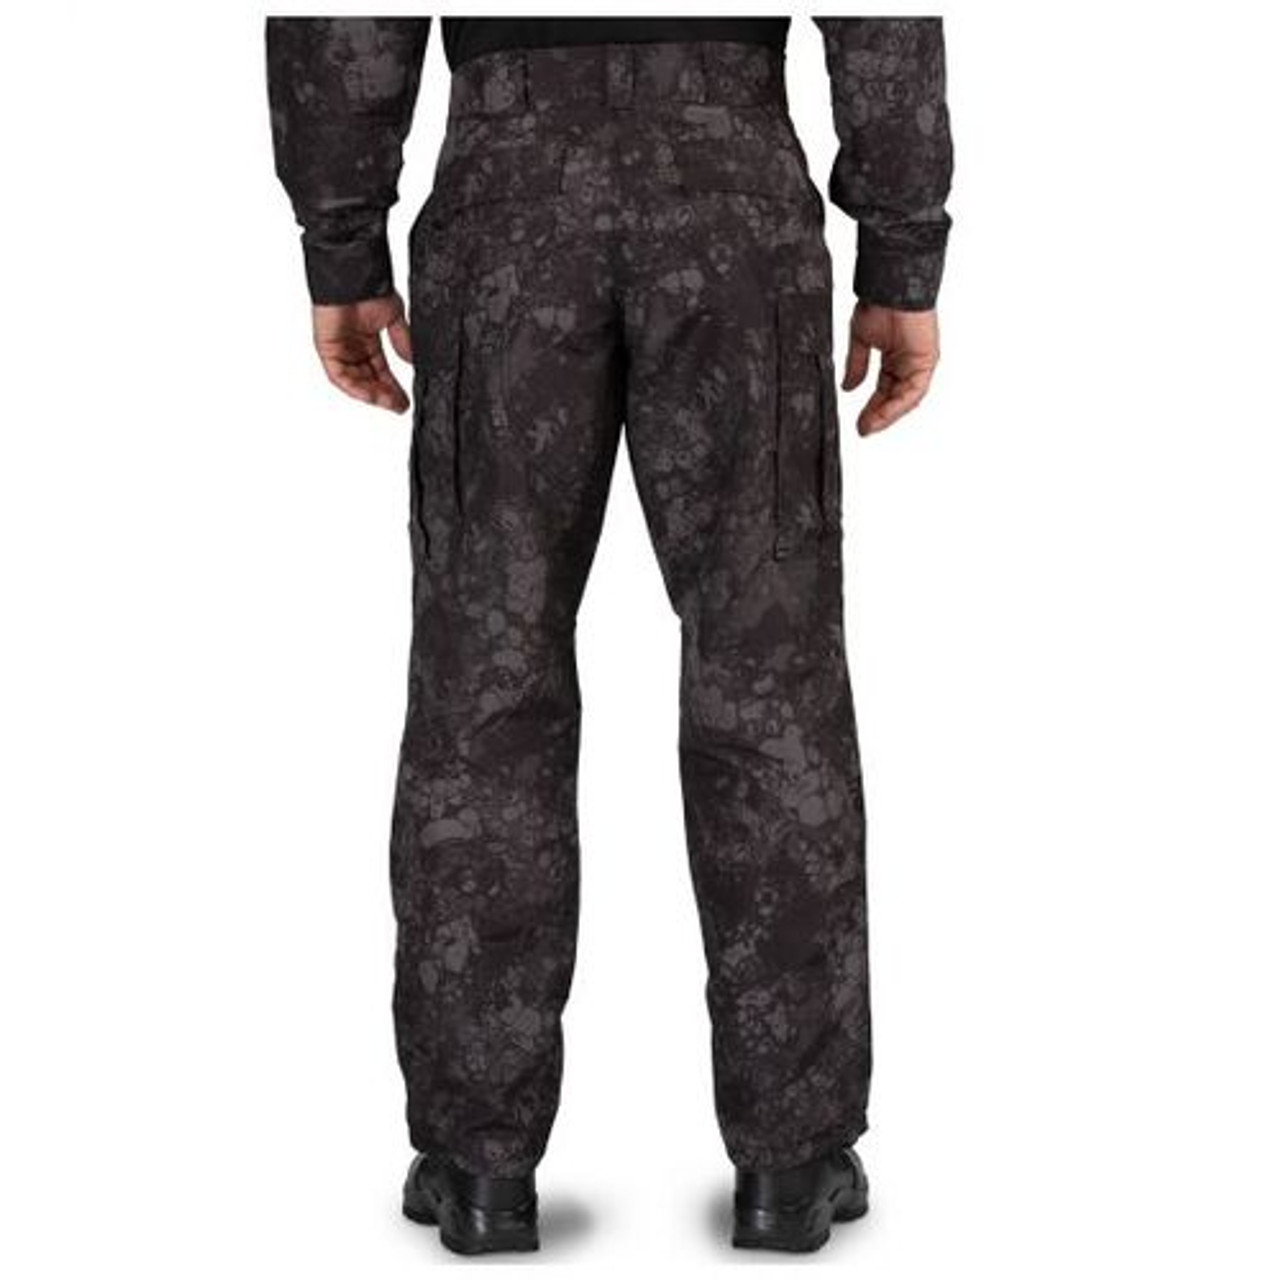 5.11 Tactical 74462G7 MEN'S GEO7™ FAST-TAC™ TDU® PANTS, 100% polyester, Water resistant finish, 9 pockets, Classic/Straight, Flexible, Uniform/Cargo, self-adjusting waistband with 7 loops, Nylon reinforcement on back magazine and front utility pocket